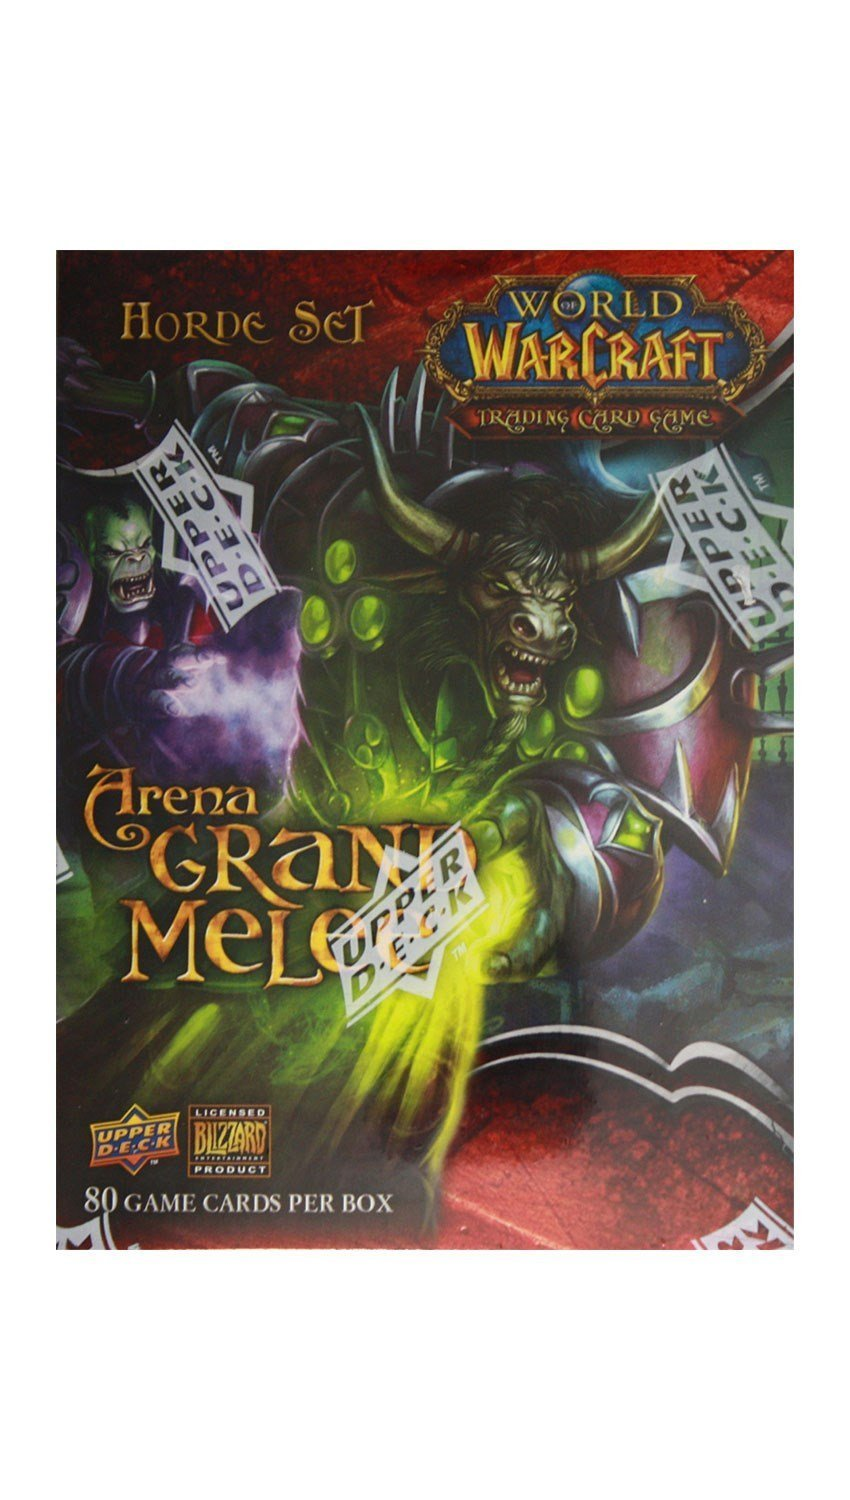 World of Warcraft TCG WoW Trading Card Game Arena Grand Melee Horde Set